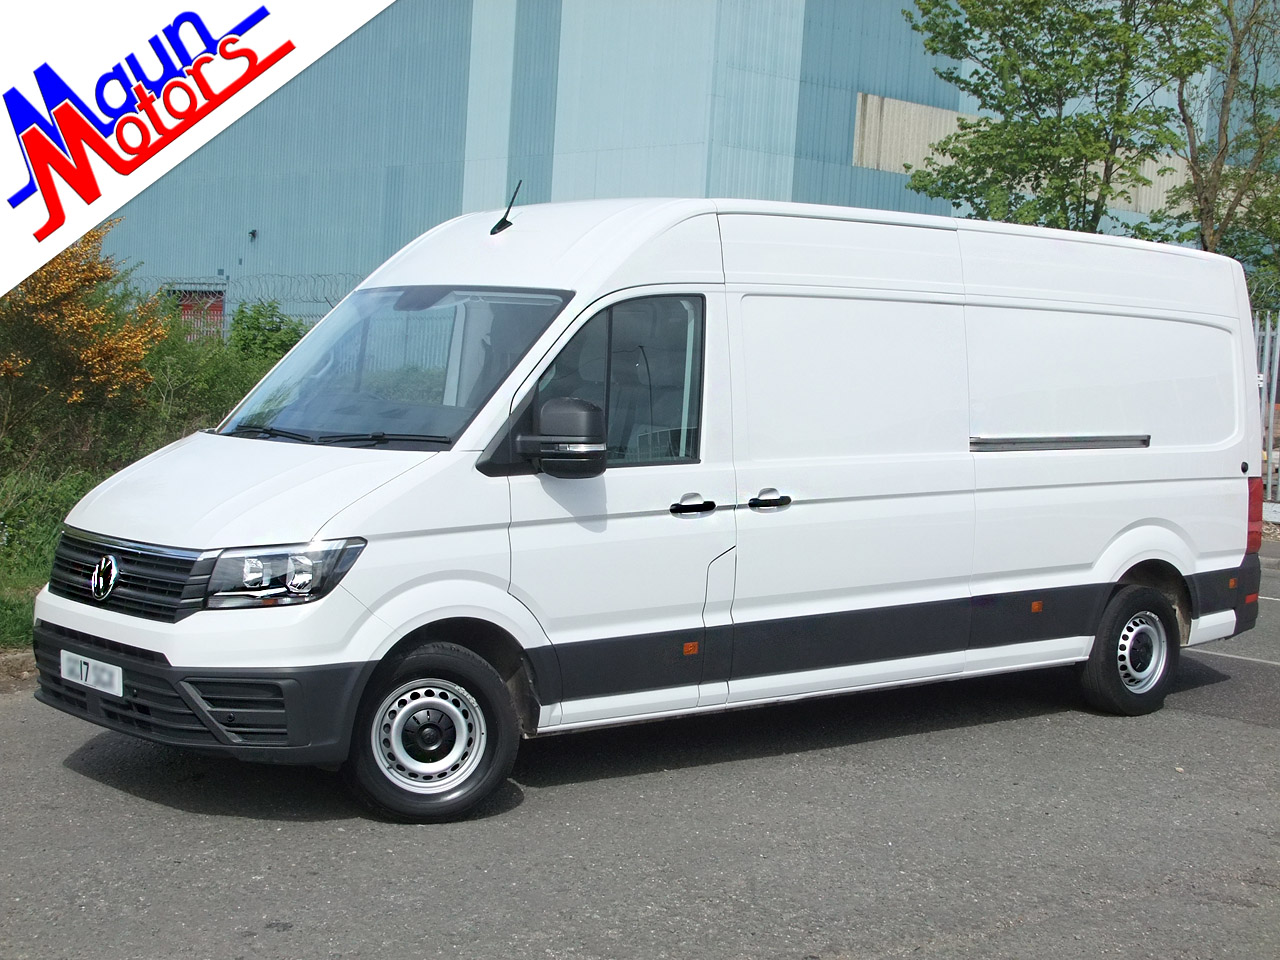 Volkswagen Crafter used vans for sale